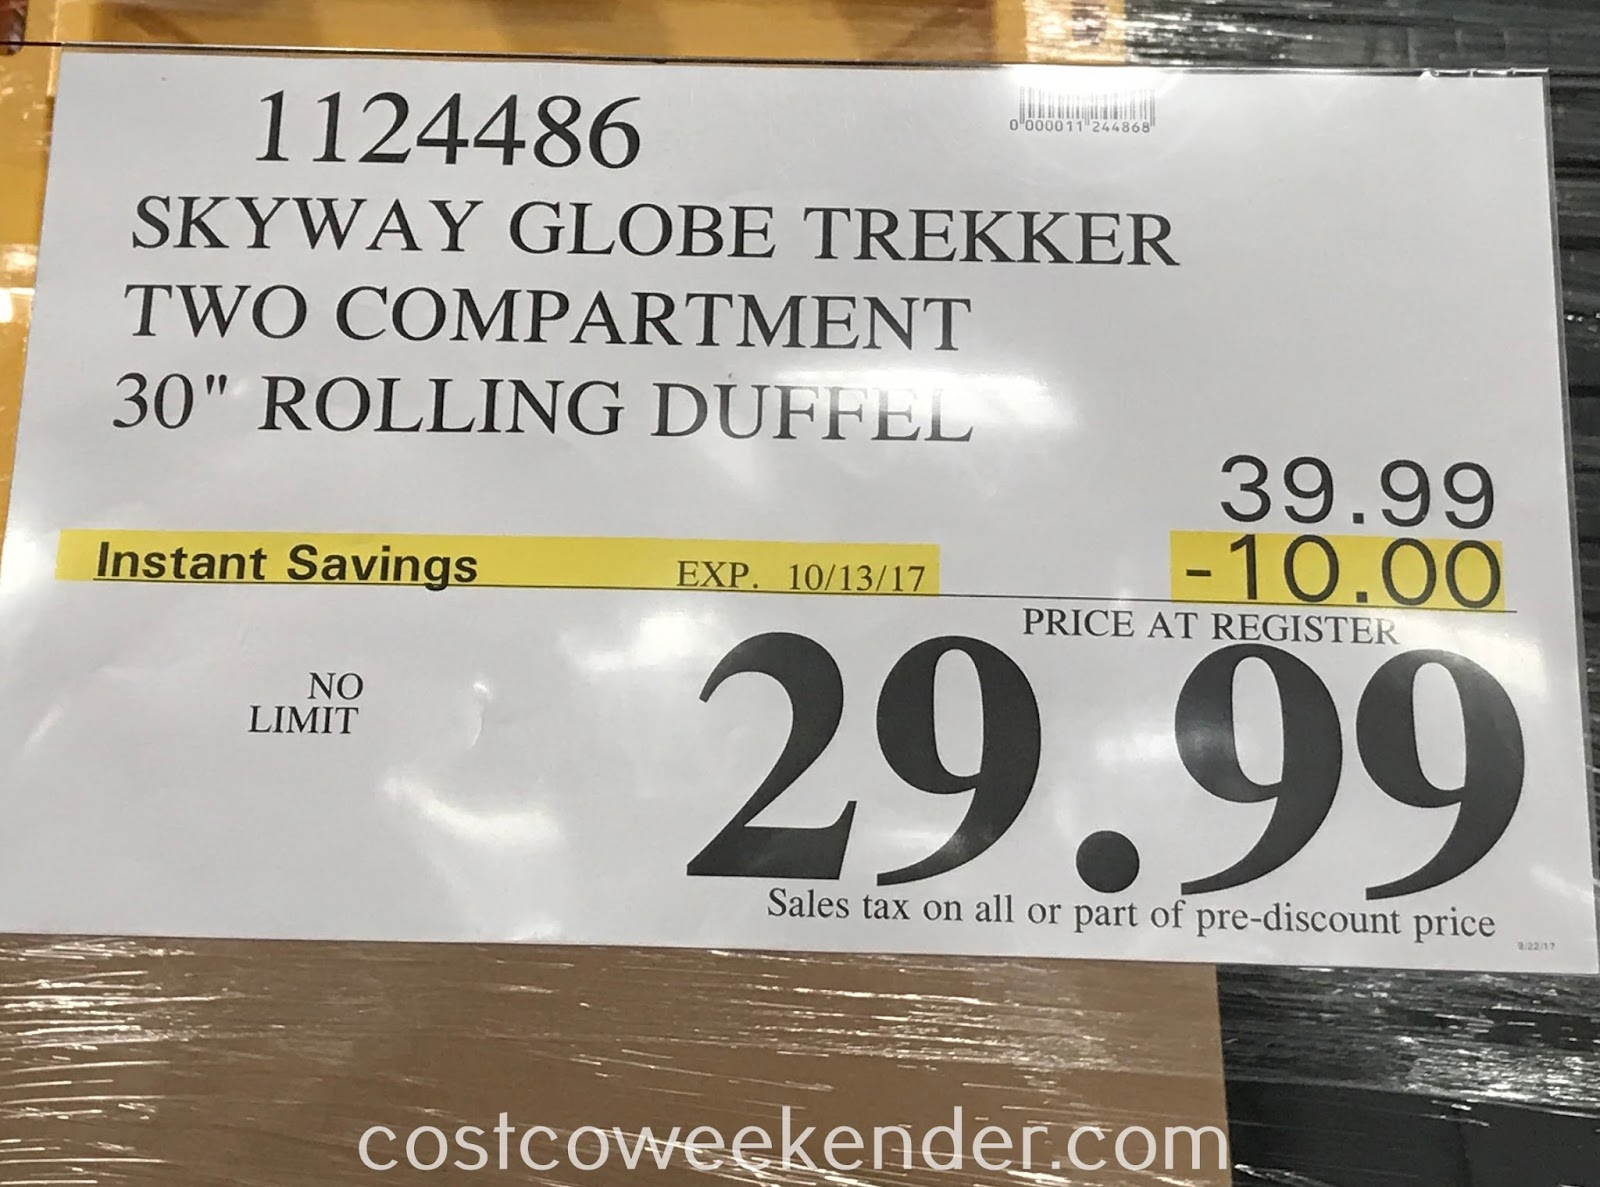 Deal for the Skyway Globe Trekker Two Compartment Rolling Duffel at Costco